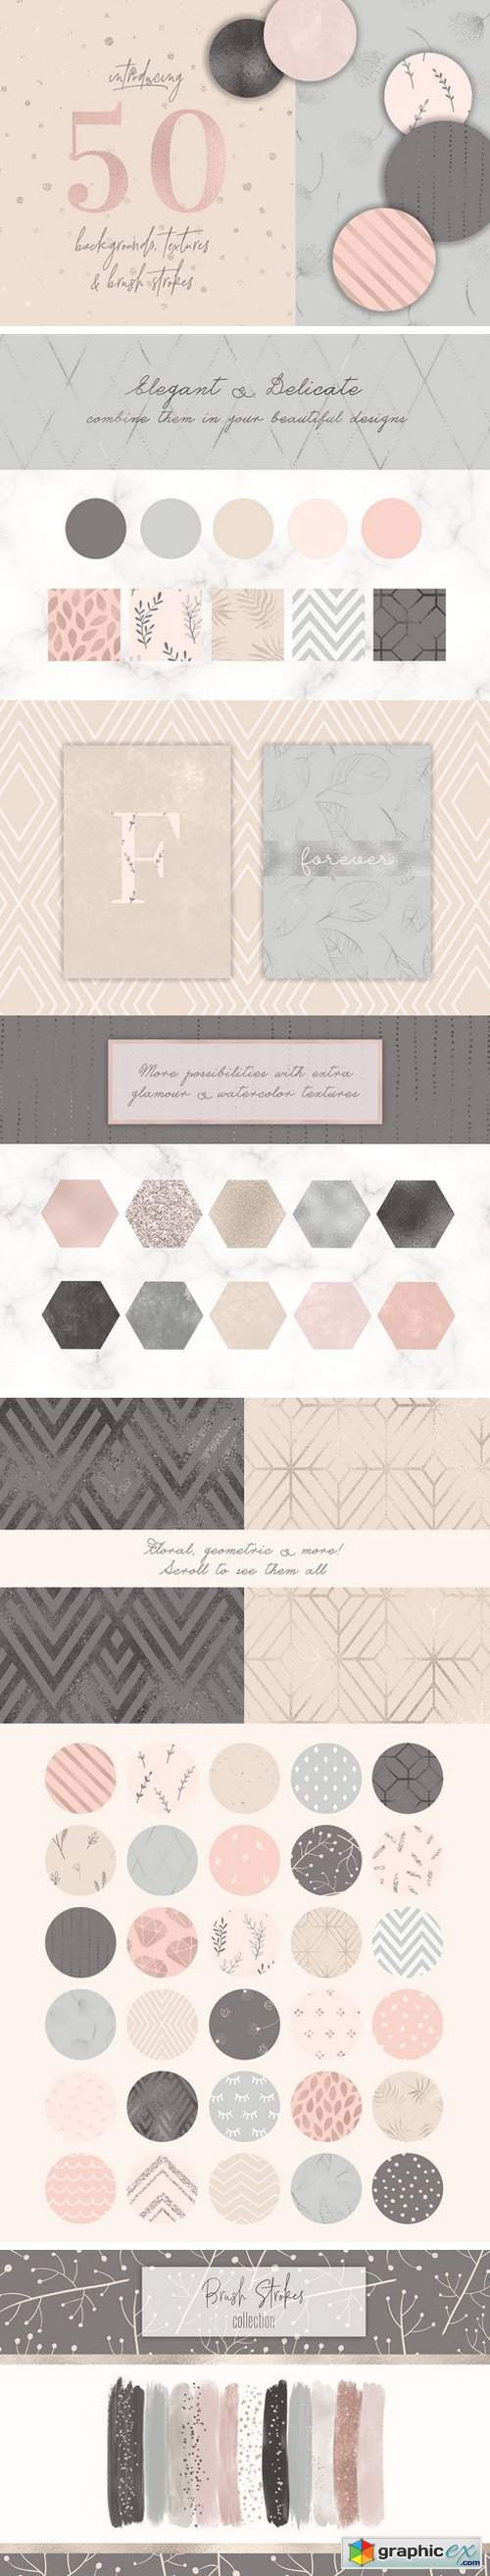 50 Delicate Backgrounds & Textures